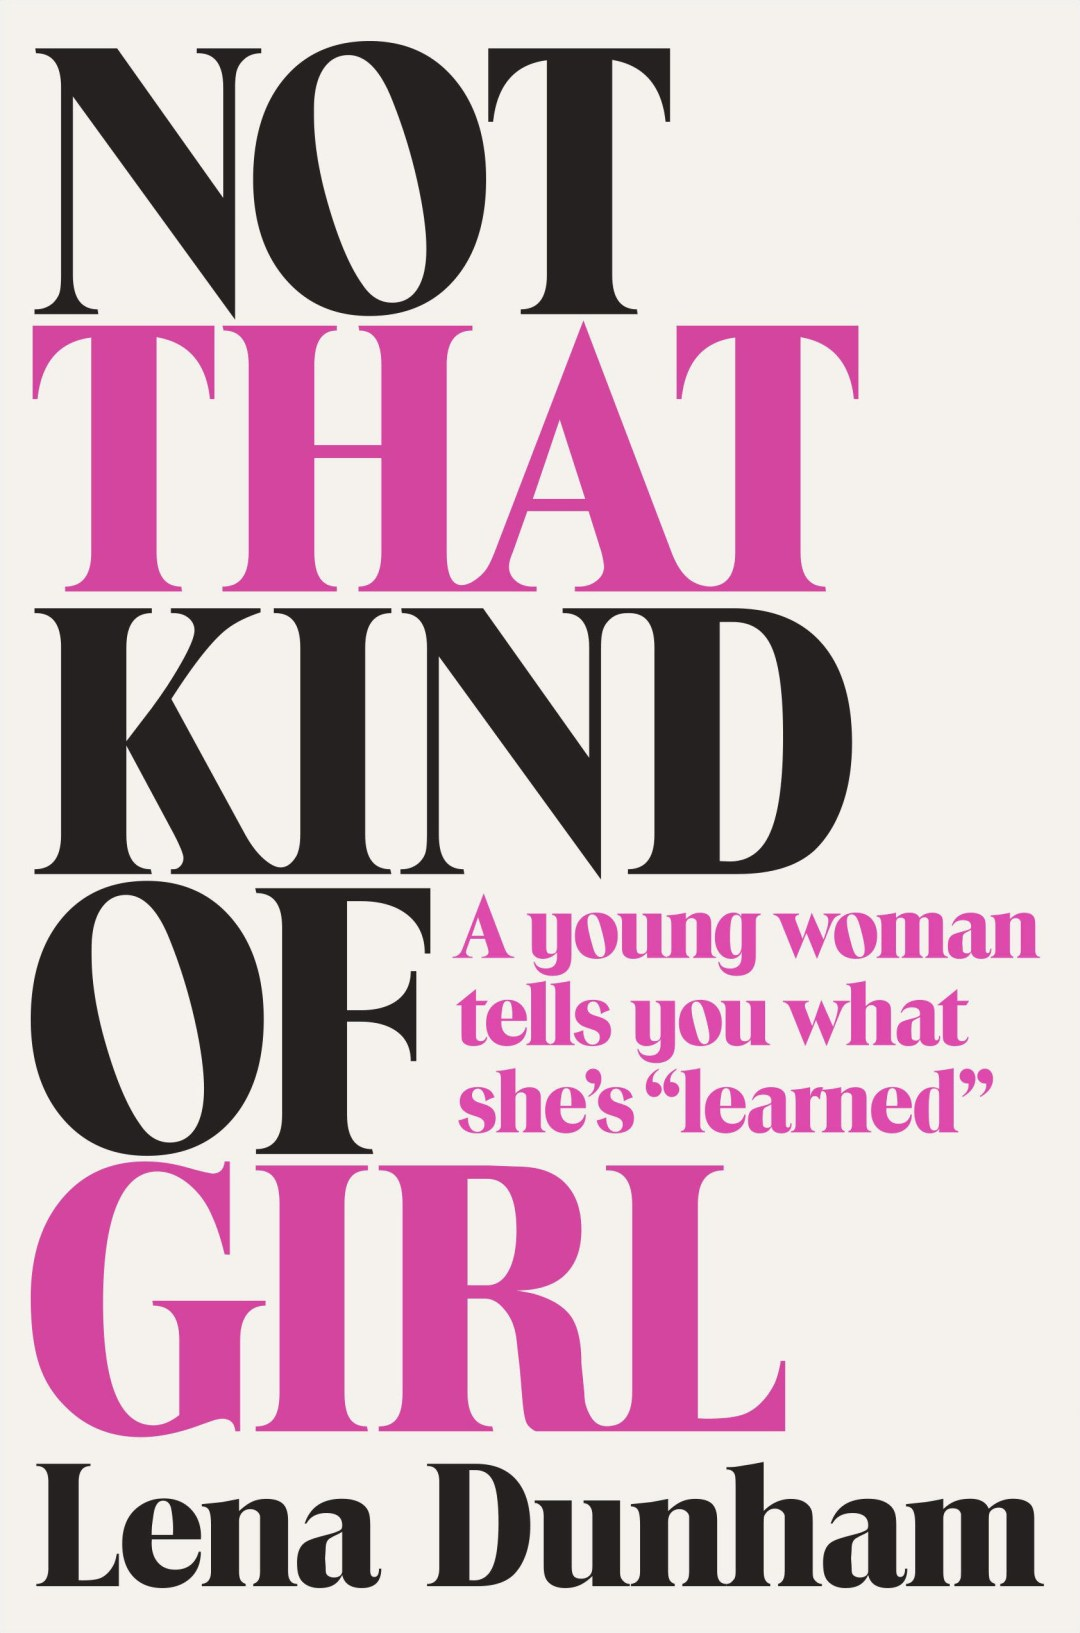 Female Biographies - Not That Kind of Girl by Lena Dunham | Dutchie Love